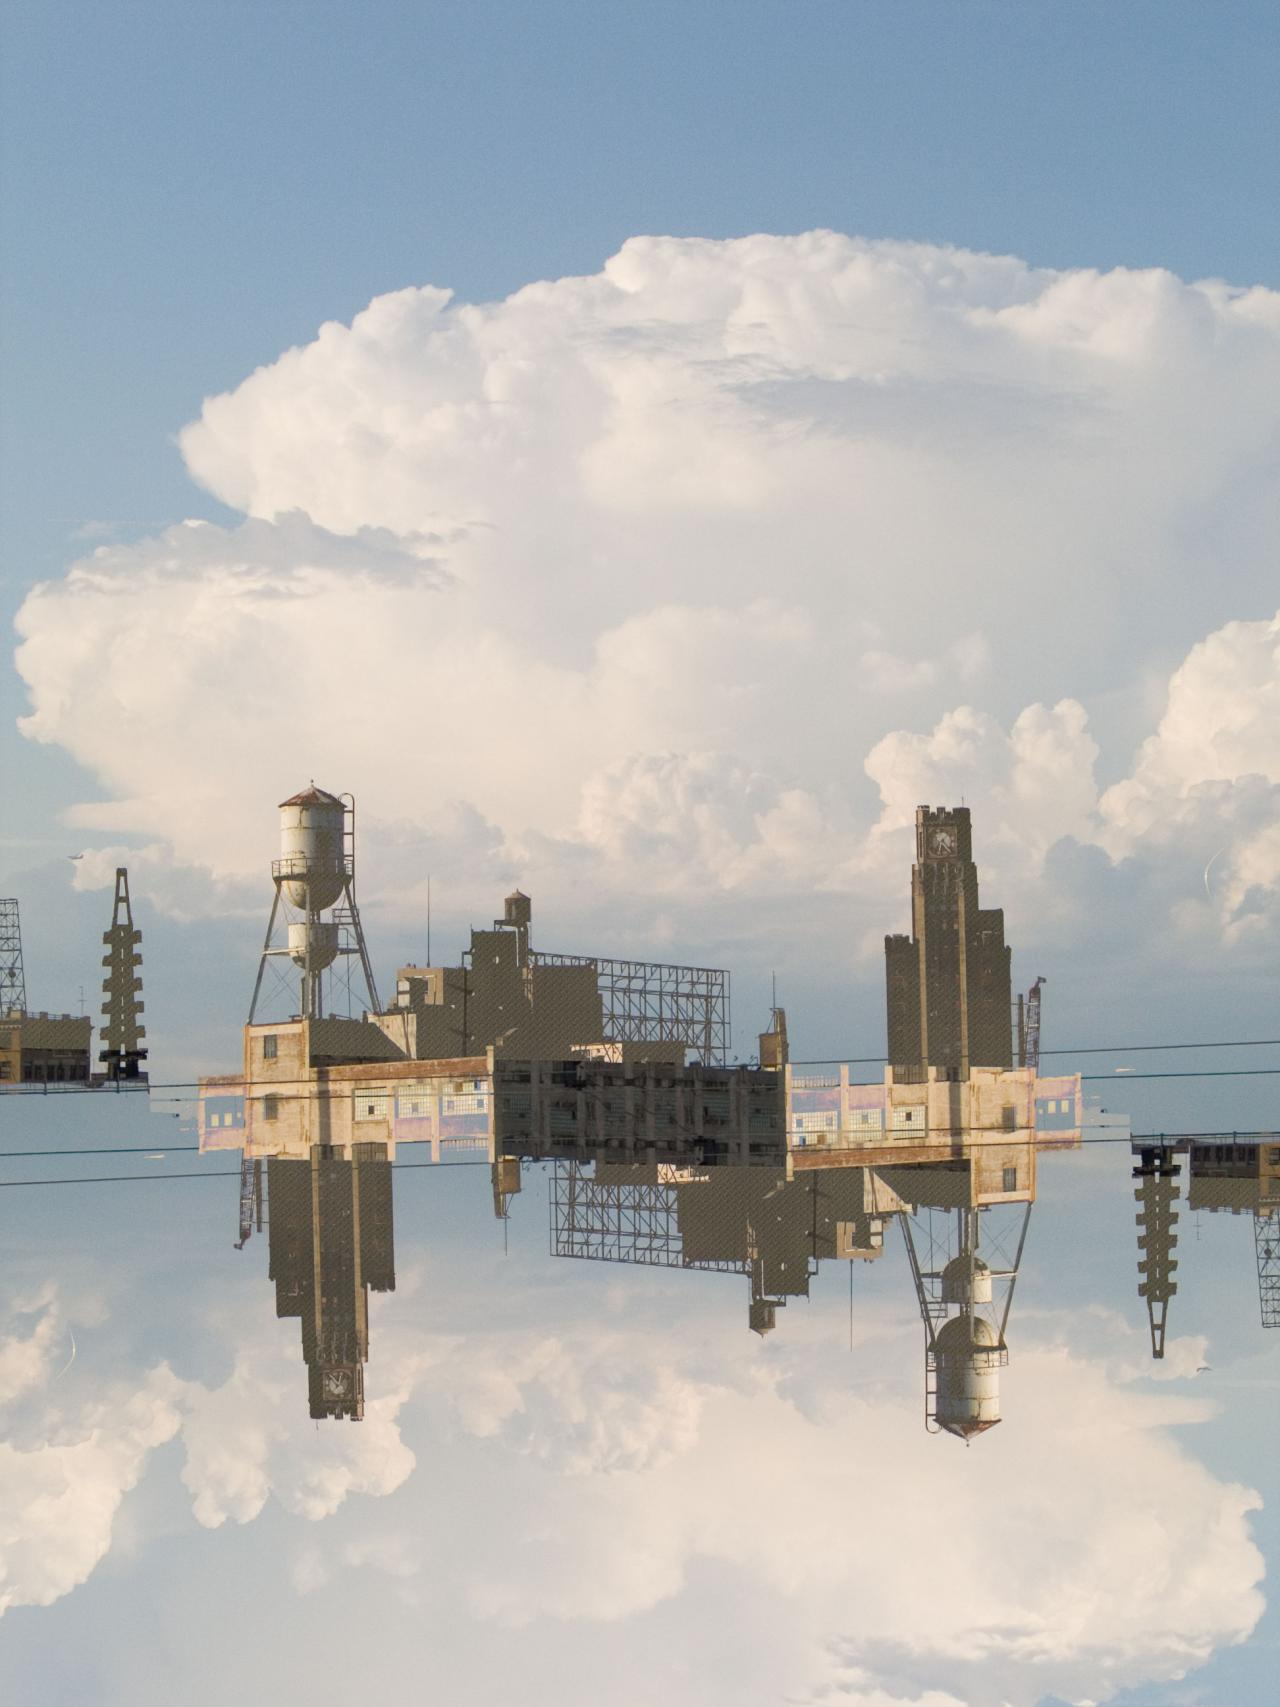 Cloud Structure, 2008, digital photograph photoshopped by Orin Buck.